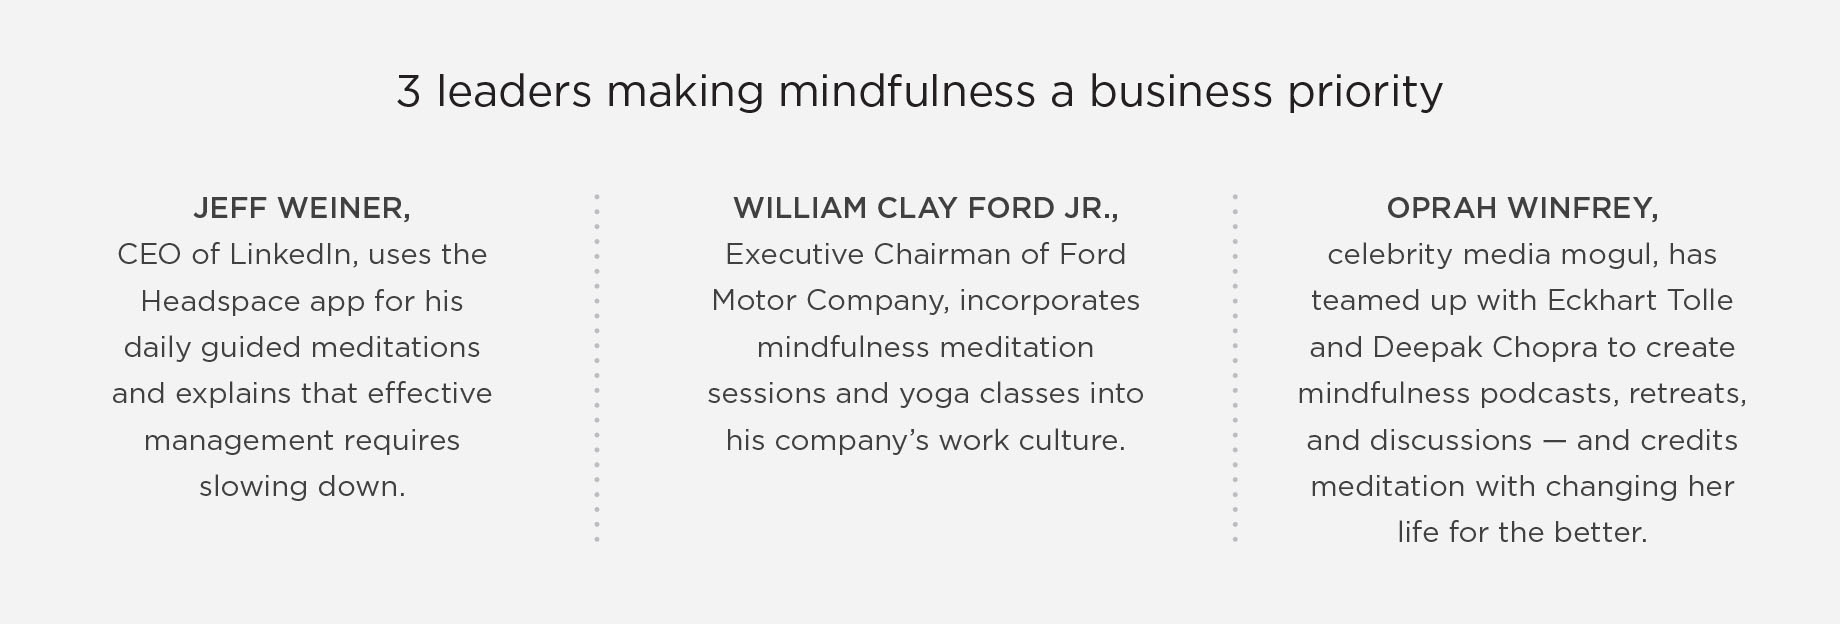 3 leaders making mindfulness a business priority: Jeff Weiner, CEO of LinkedIn, uses the Headspace app for his daily guided meditations and explains that effective management requires slowing down. William Clay Ford Jr., Executive Chairman of Ford Motor Company, incorporates mindfulness meditation sessions and yoga classes into his company's work culture. Oprah Winfrey, celebrity media mogul, has teamed up with Eckhart Tolle and Deepak Chopra to create mindfulness podcasts, retreats, and discussions – and credits meditation with changing her life for the better.